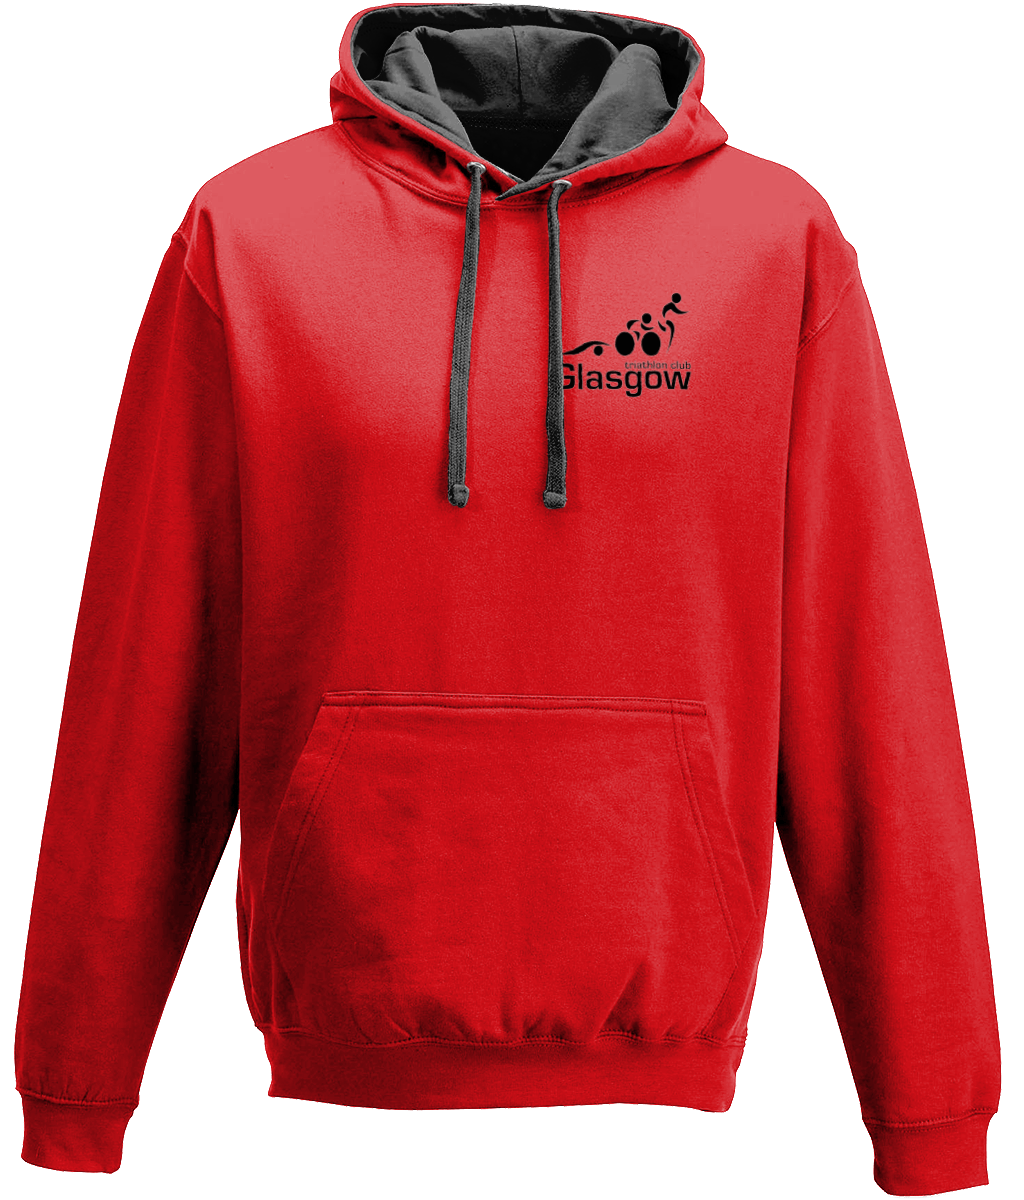 Glasgow Triathlon Club - Red Hoodie